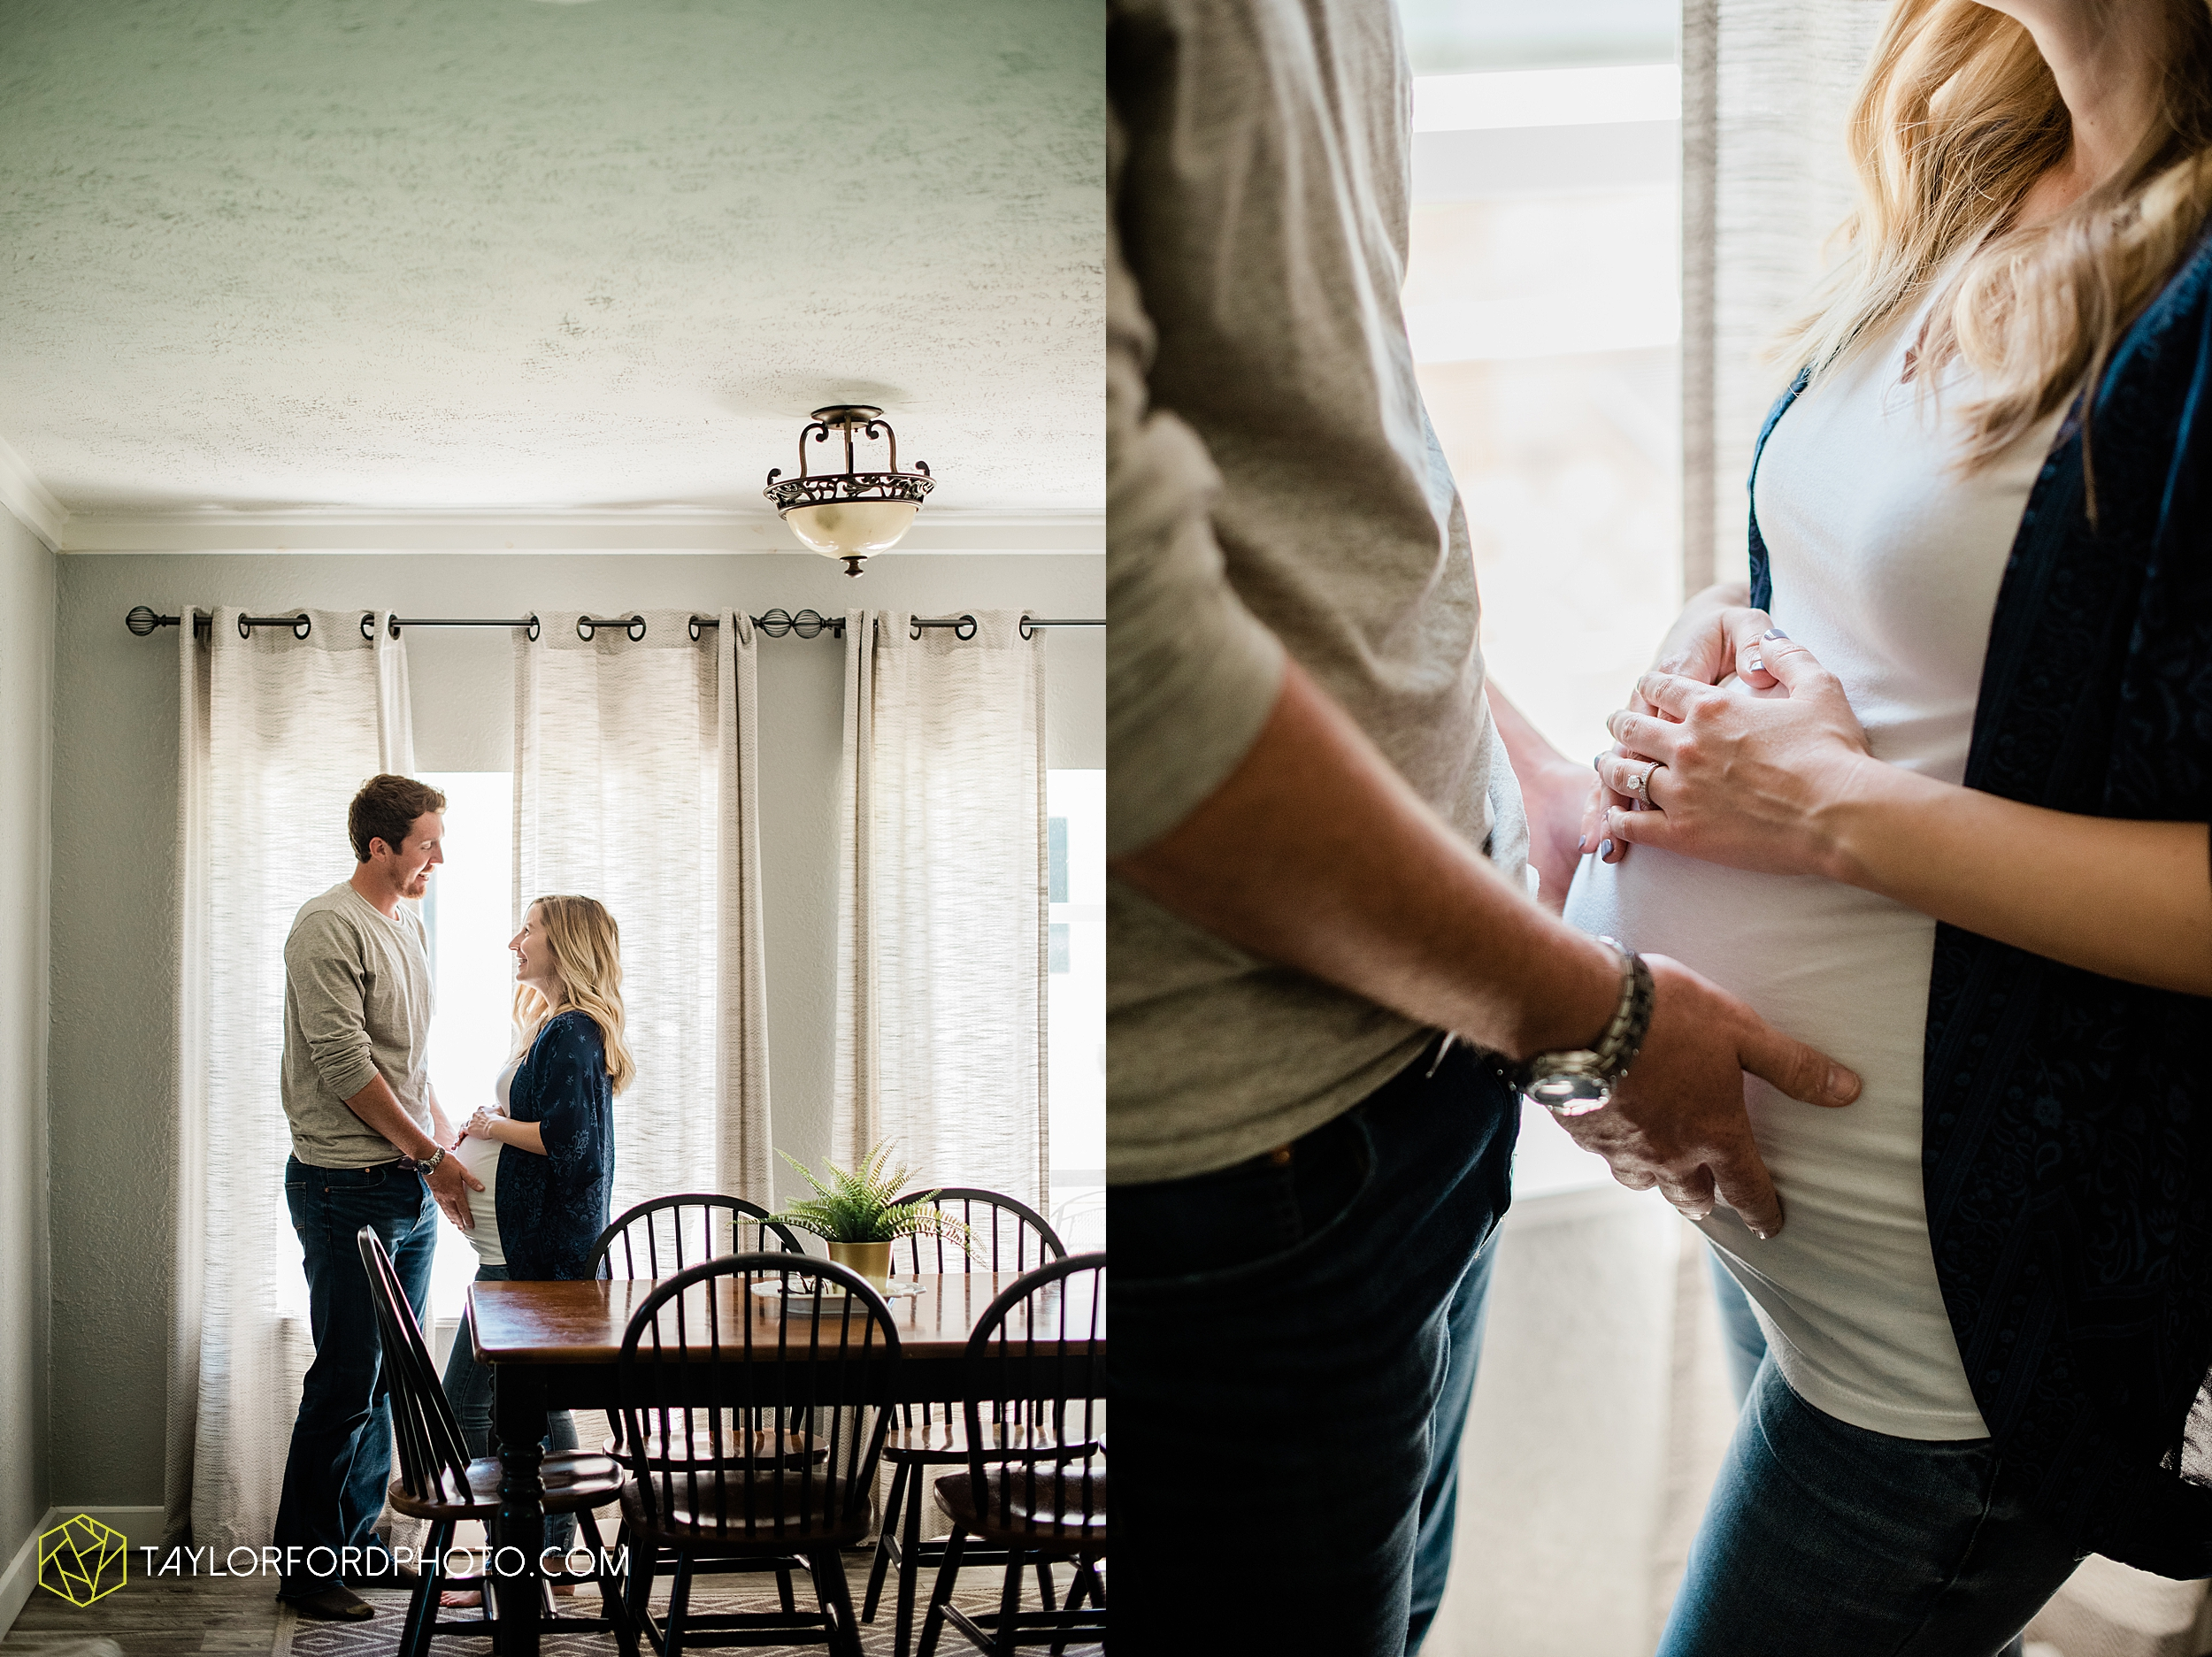 maumee-toledo-ohio-downtown-at-home-maternity-newborn-photographer-photography-taylor-ford-hirschy-photographer_3005.jpg